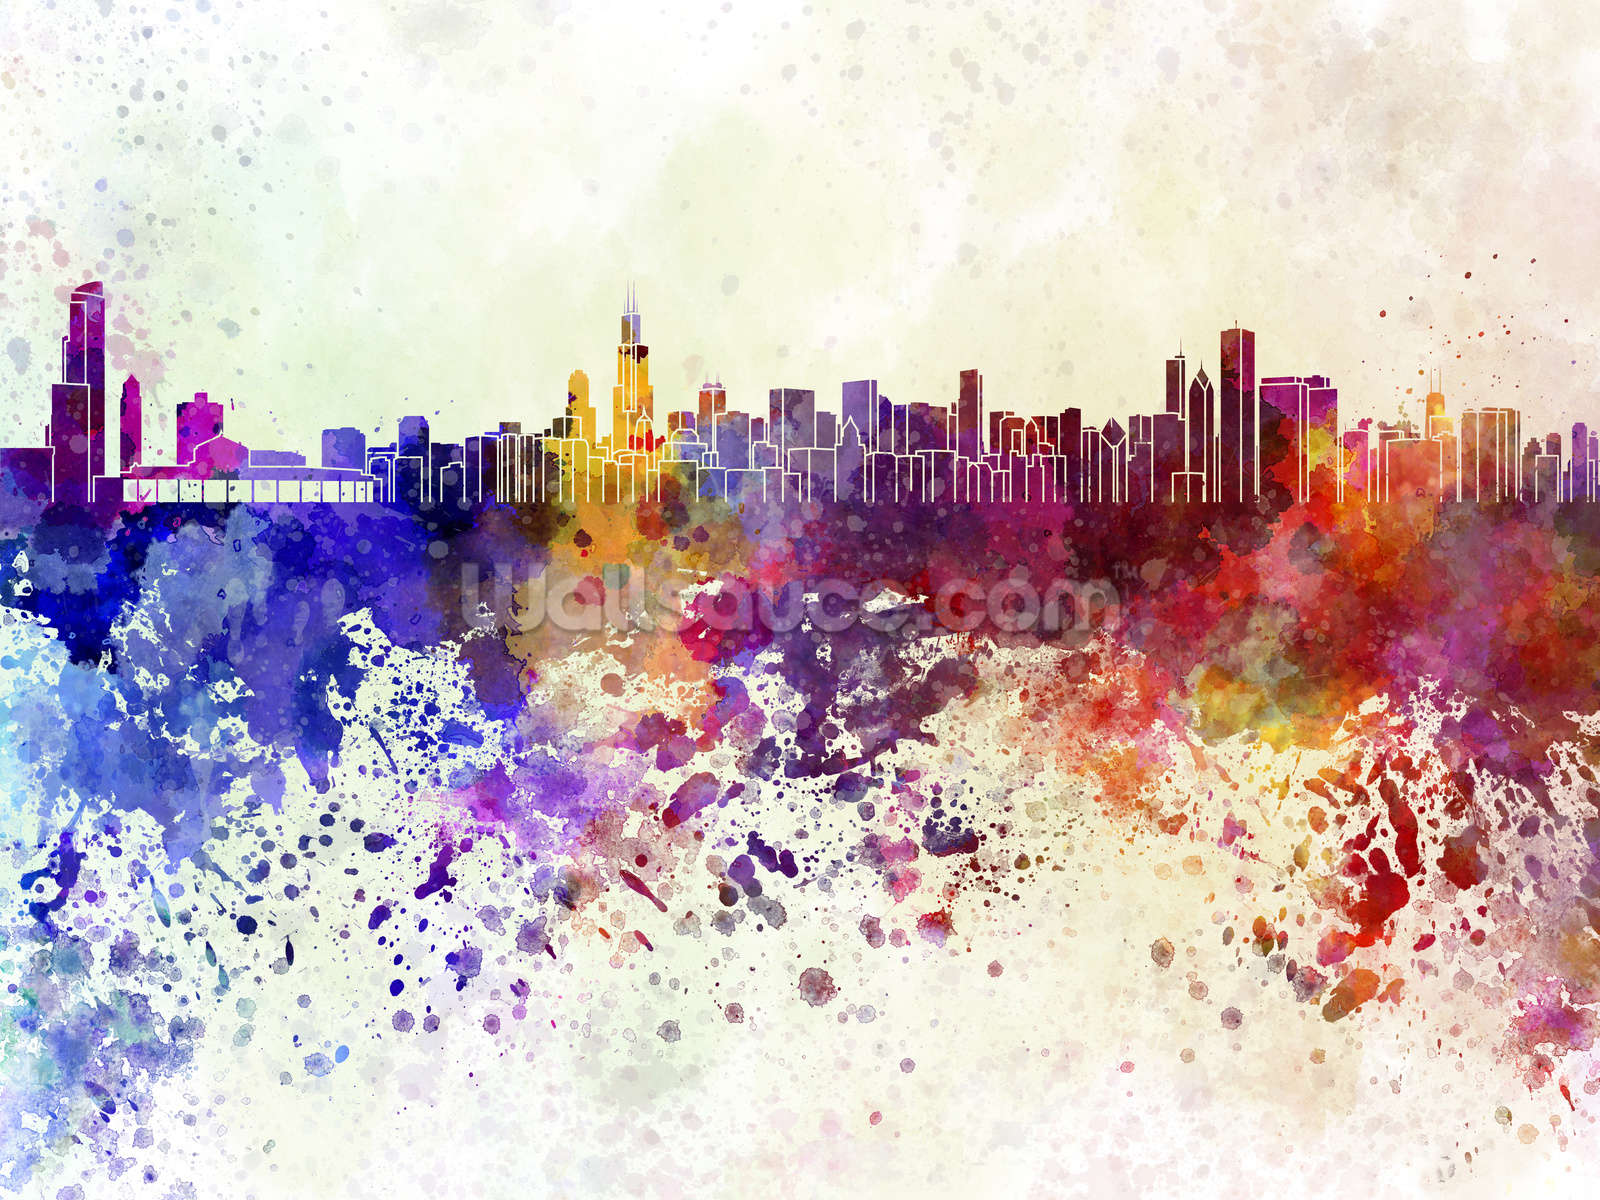 Chicago Abstract Wall Mural Photo Wallpaper Part 33